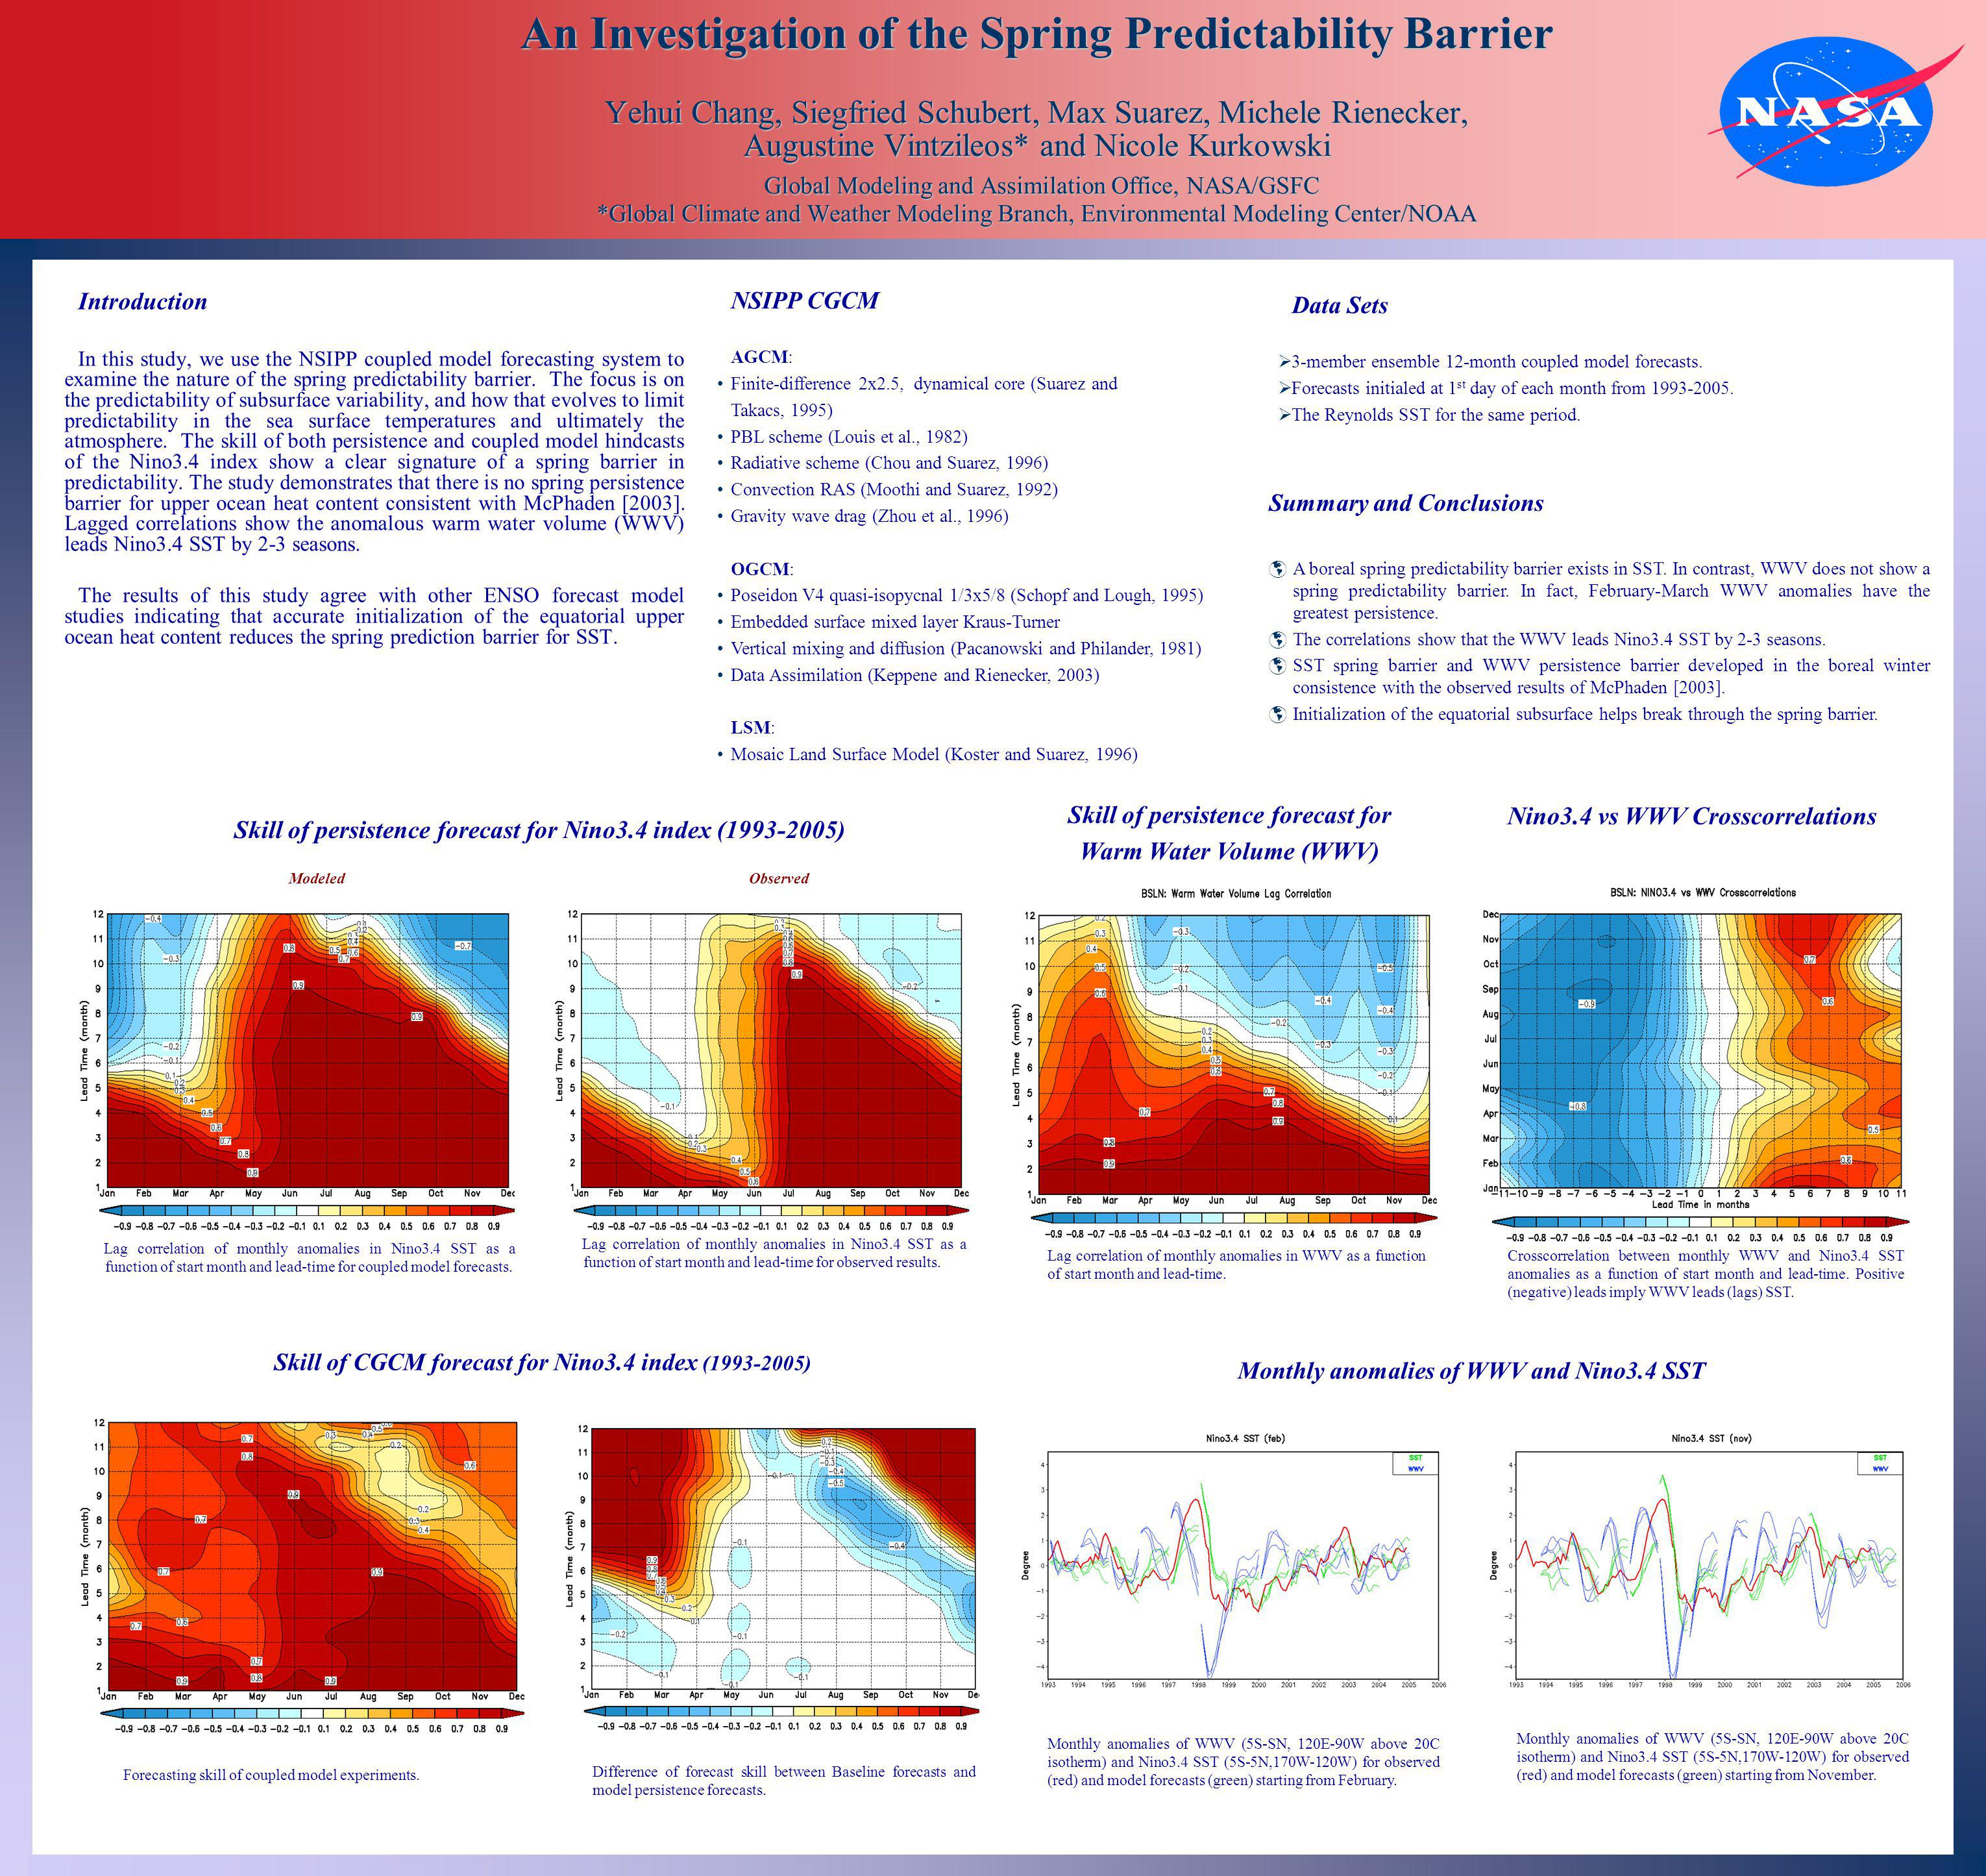 An Investigation of the Spring Predictability Barrier Yehui Chang, Siegfried Schubert, Max Suarez, Michele Rienecker, Augustine Vintzileos* and Nicole Kurkowski Global Modeling and Assimilation Office, NASA/GSFC *Global Climate and Weather Modeling Branch, Environmental Modeling Center/NOAA Introduction In this study, we use the NSIPP coupled model forecasting system to examine the nature of the spring predictability barrier.